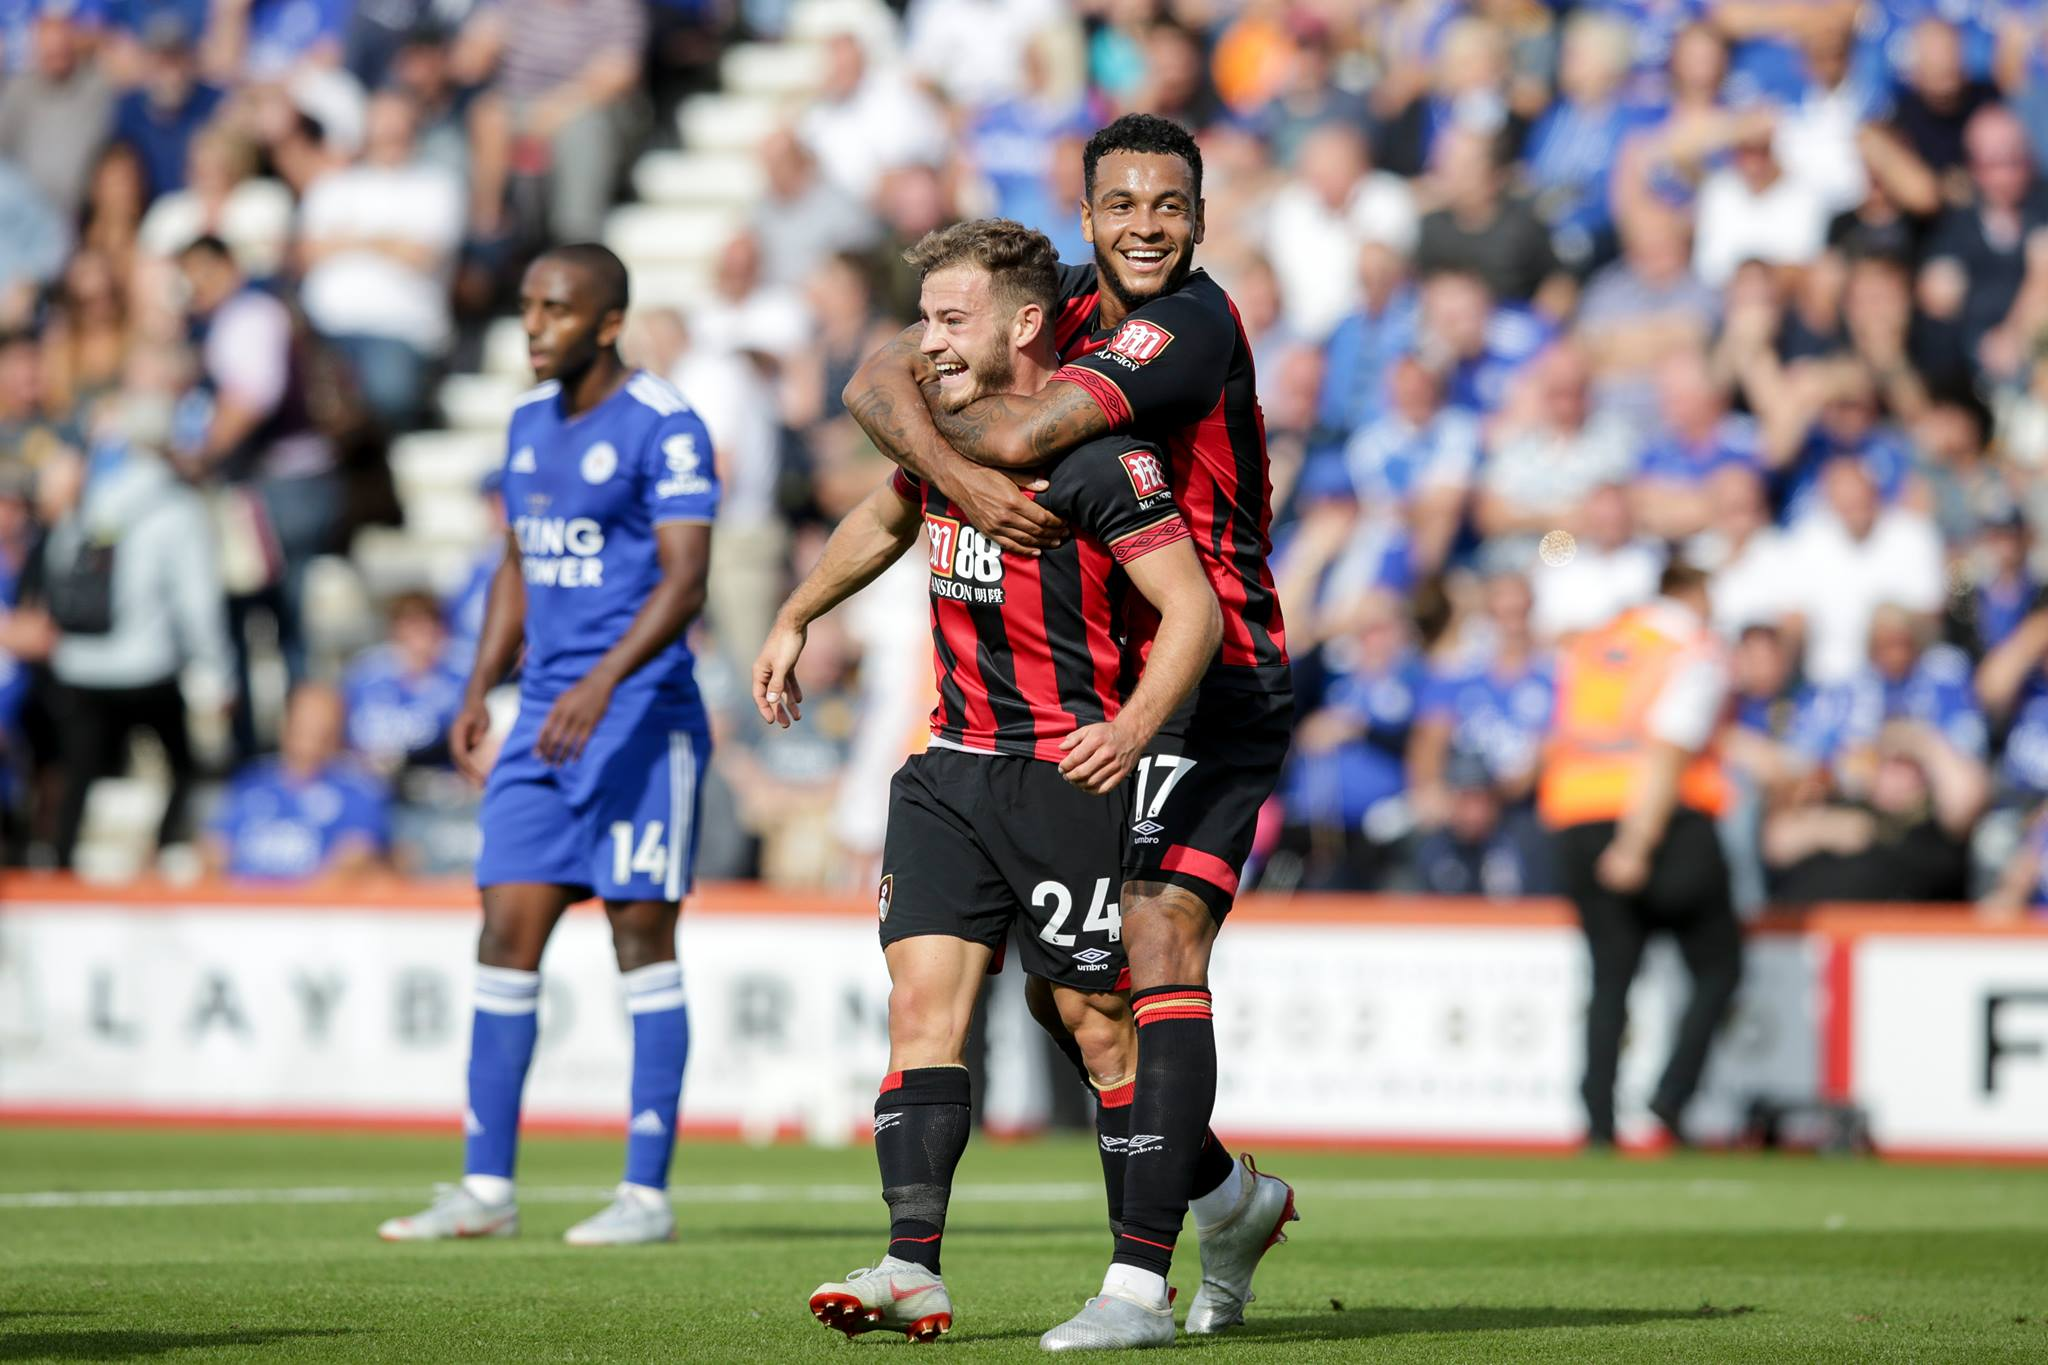 Ryan Fraser, A.F.C. Bournemouth, Fantasy Premier League, Premier League, Gameweek 6, FPL, Fantasy Football, FPL Tips, FPL Tricks., Pundit Picks, Luke Shaw, Roberto Firmino, Joe Gomez, Liverpool F.C., Manchester United F.C.